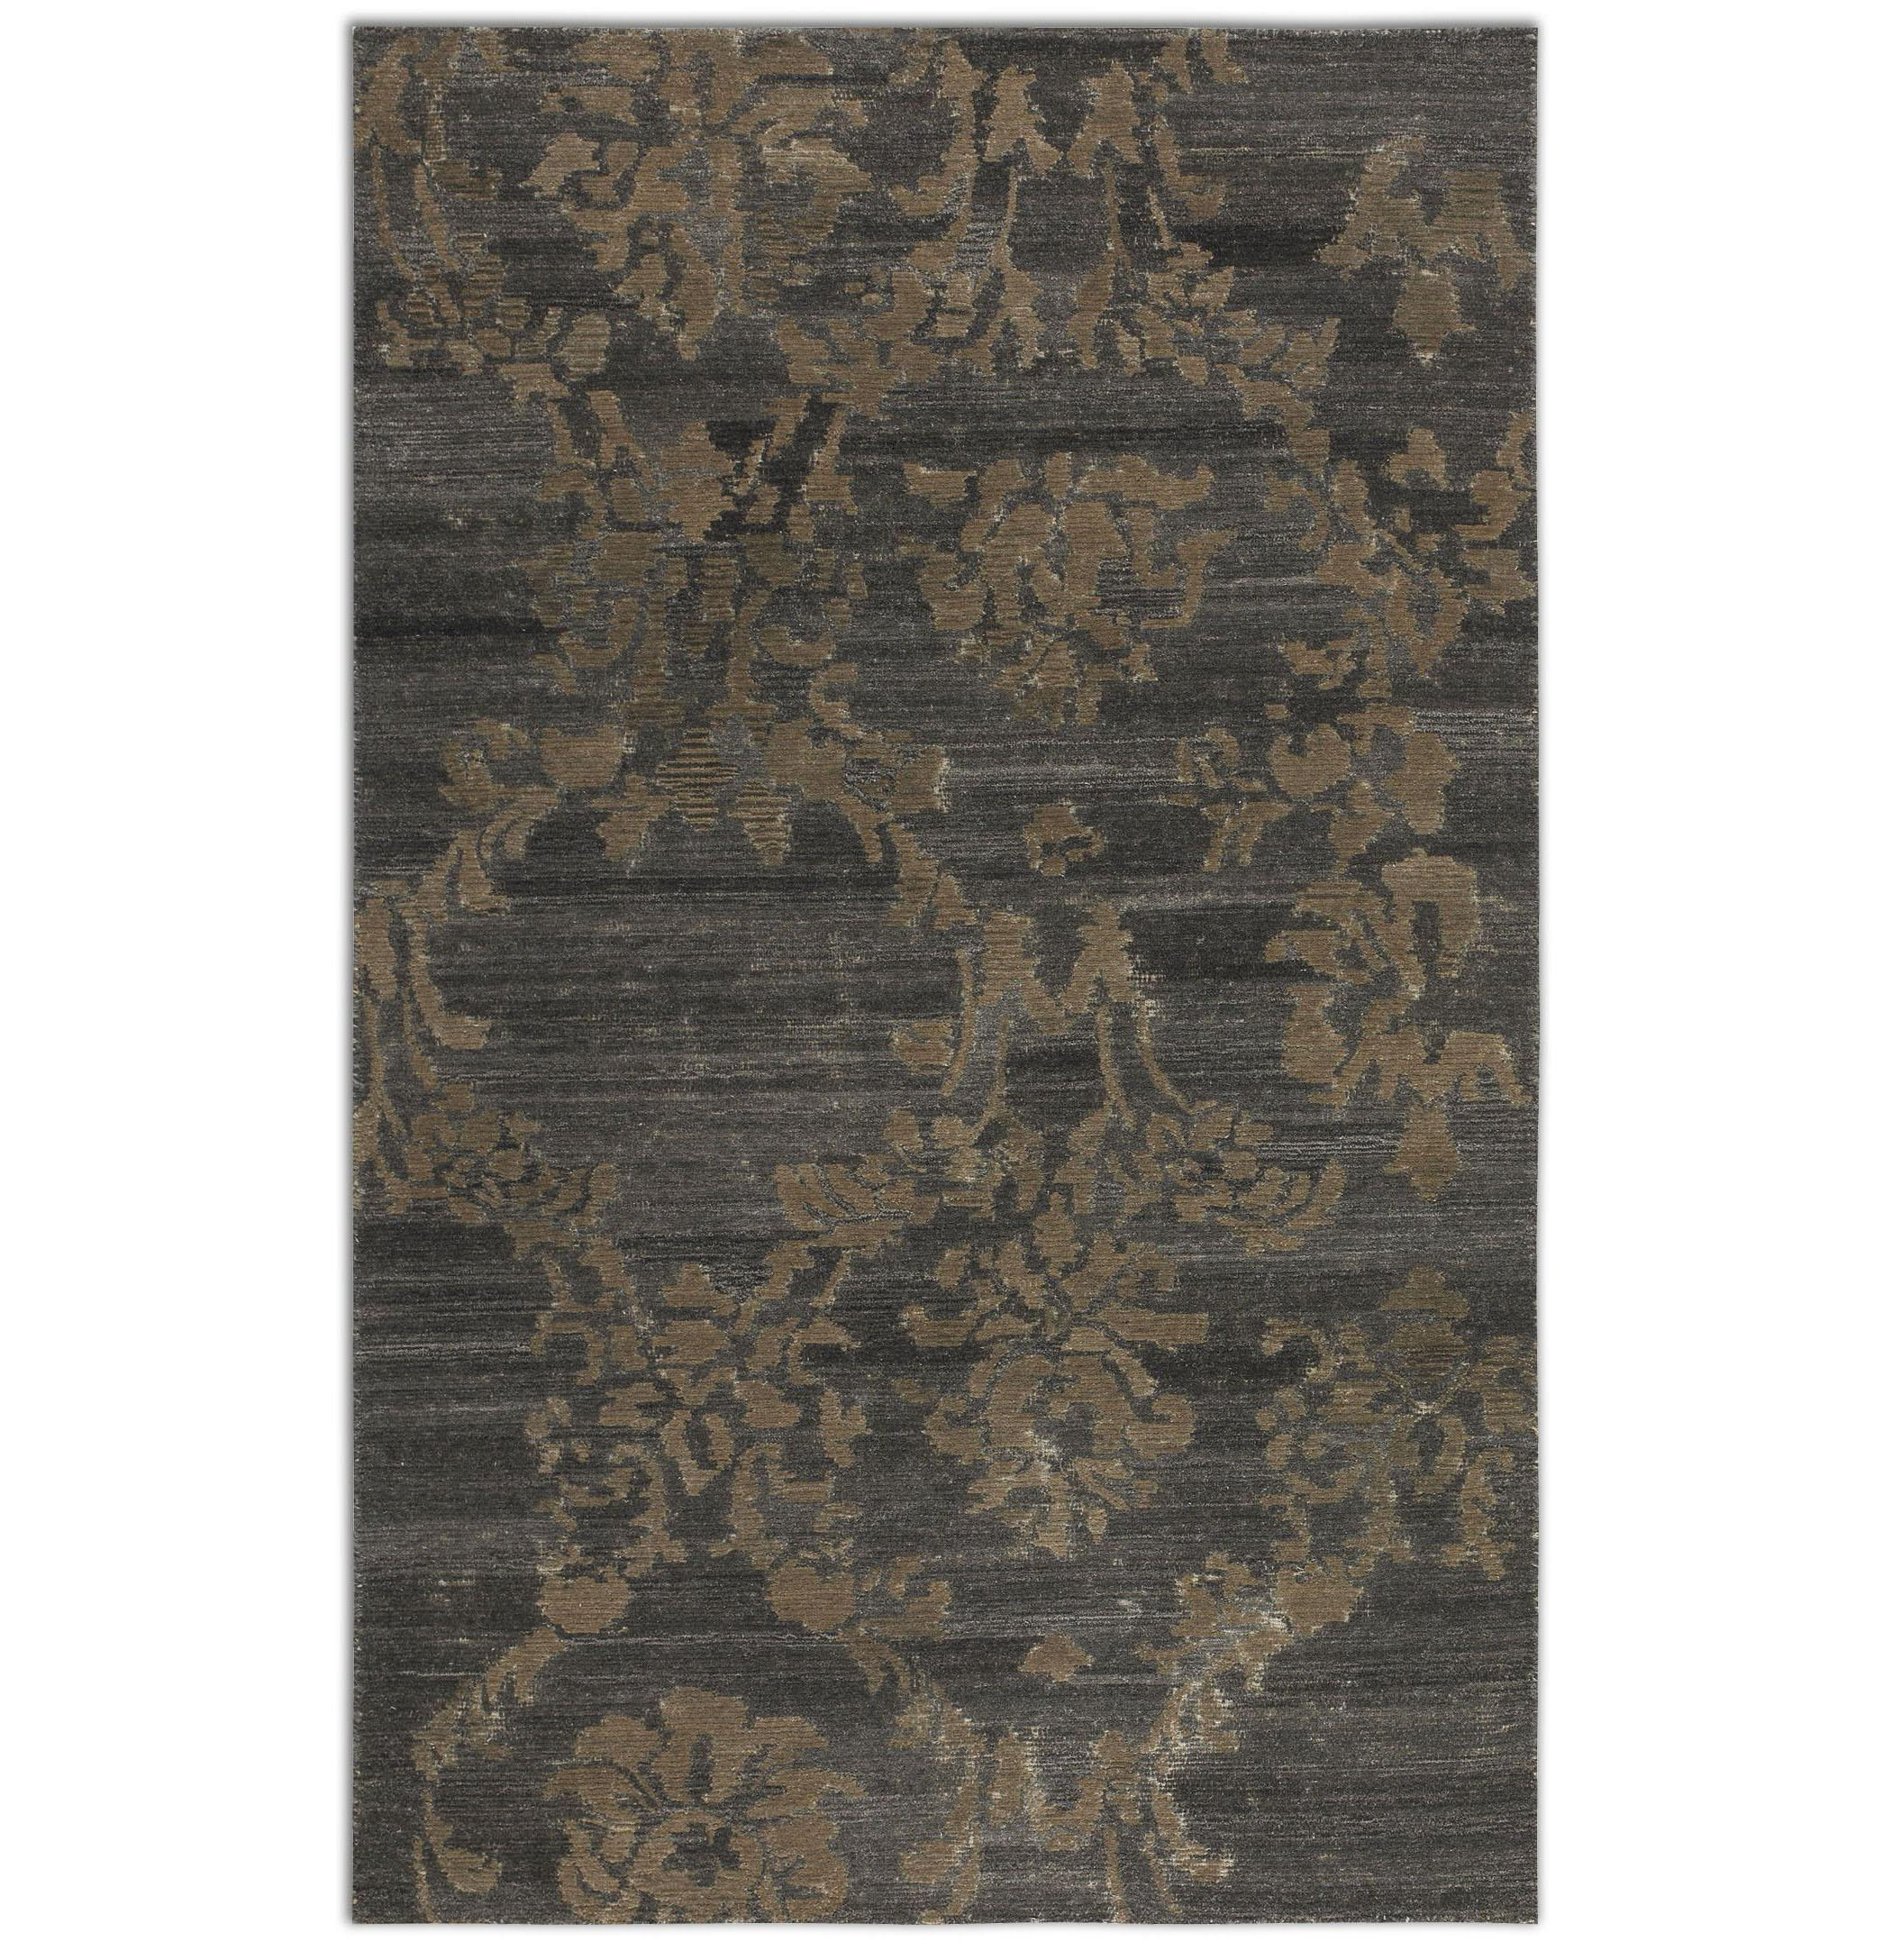 Uttermost Rugs Tavenna 5 X 8 Wool Rug - Item Number: 73046-5